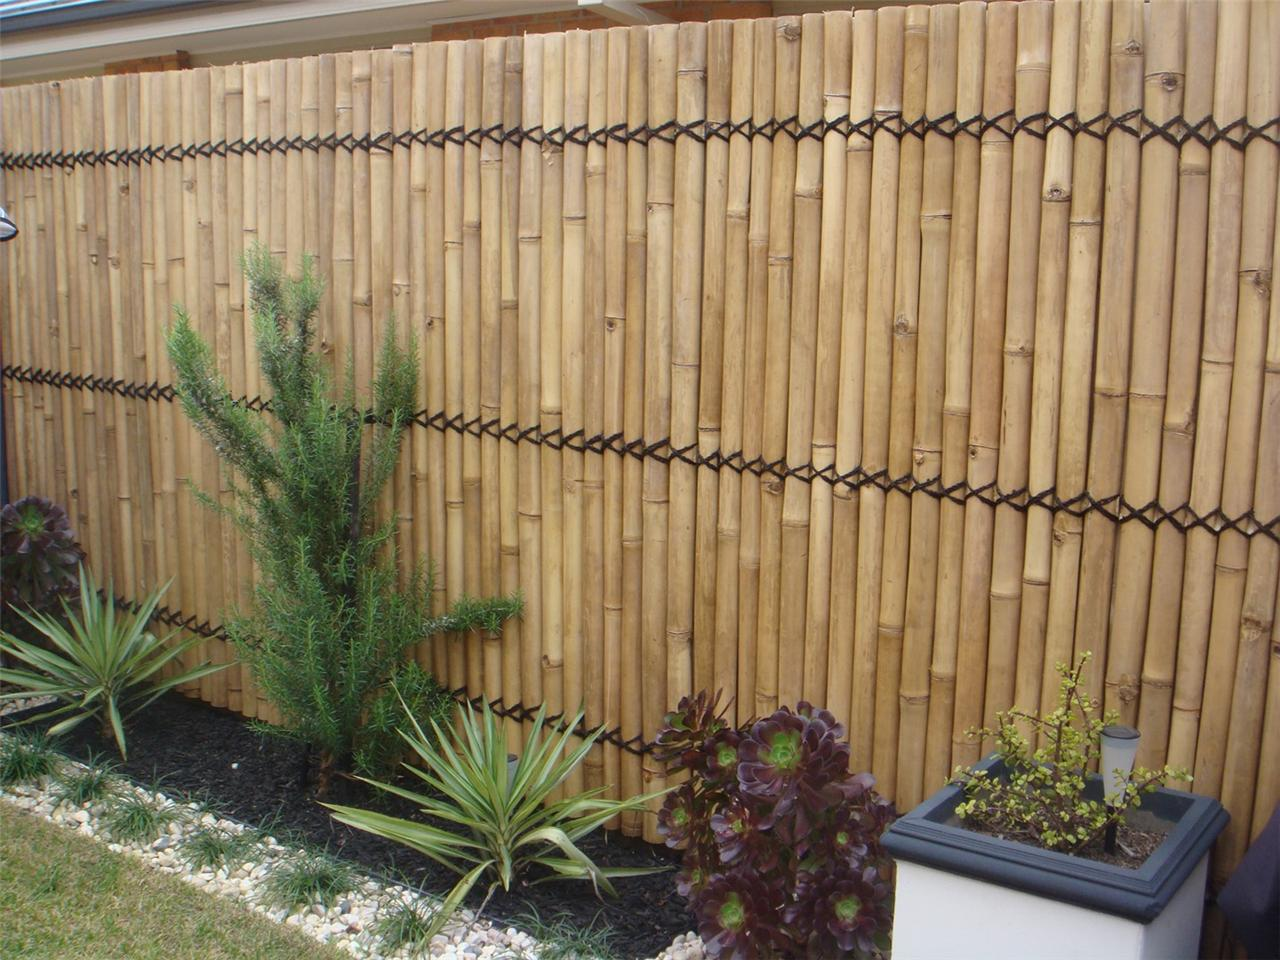 Bamboo fence outdoor areas pinterest bamboo fence Bamboo screens for outdoors